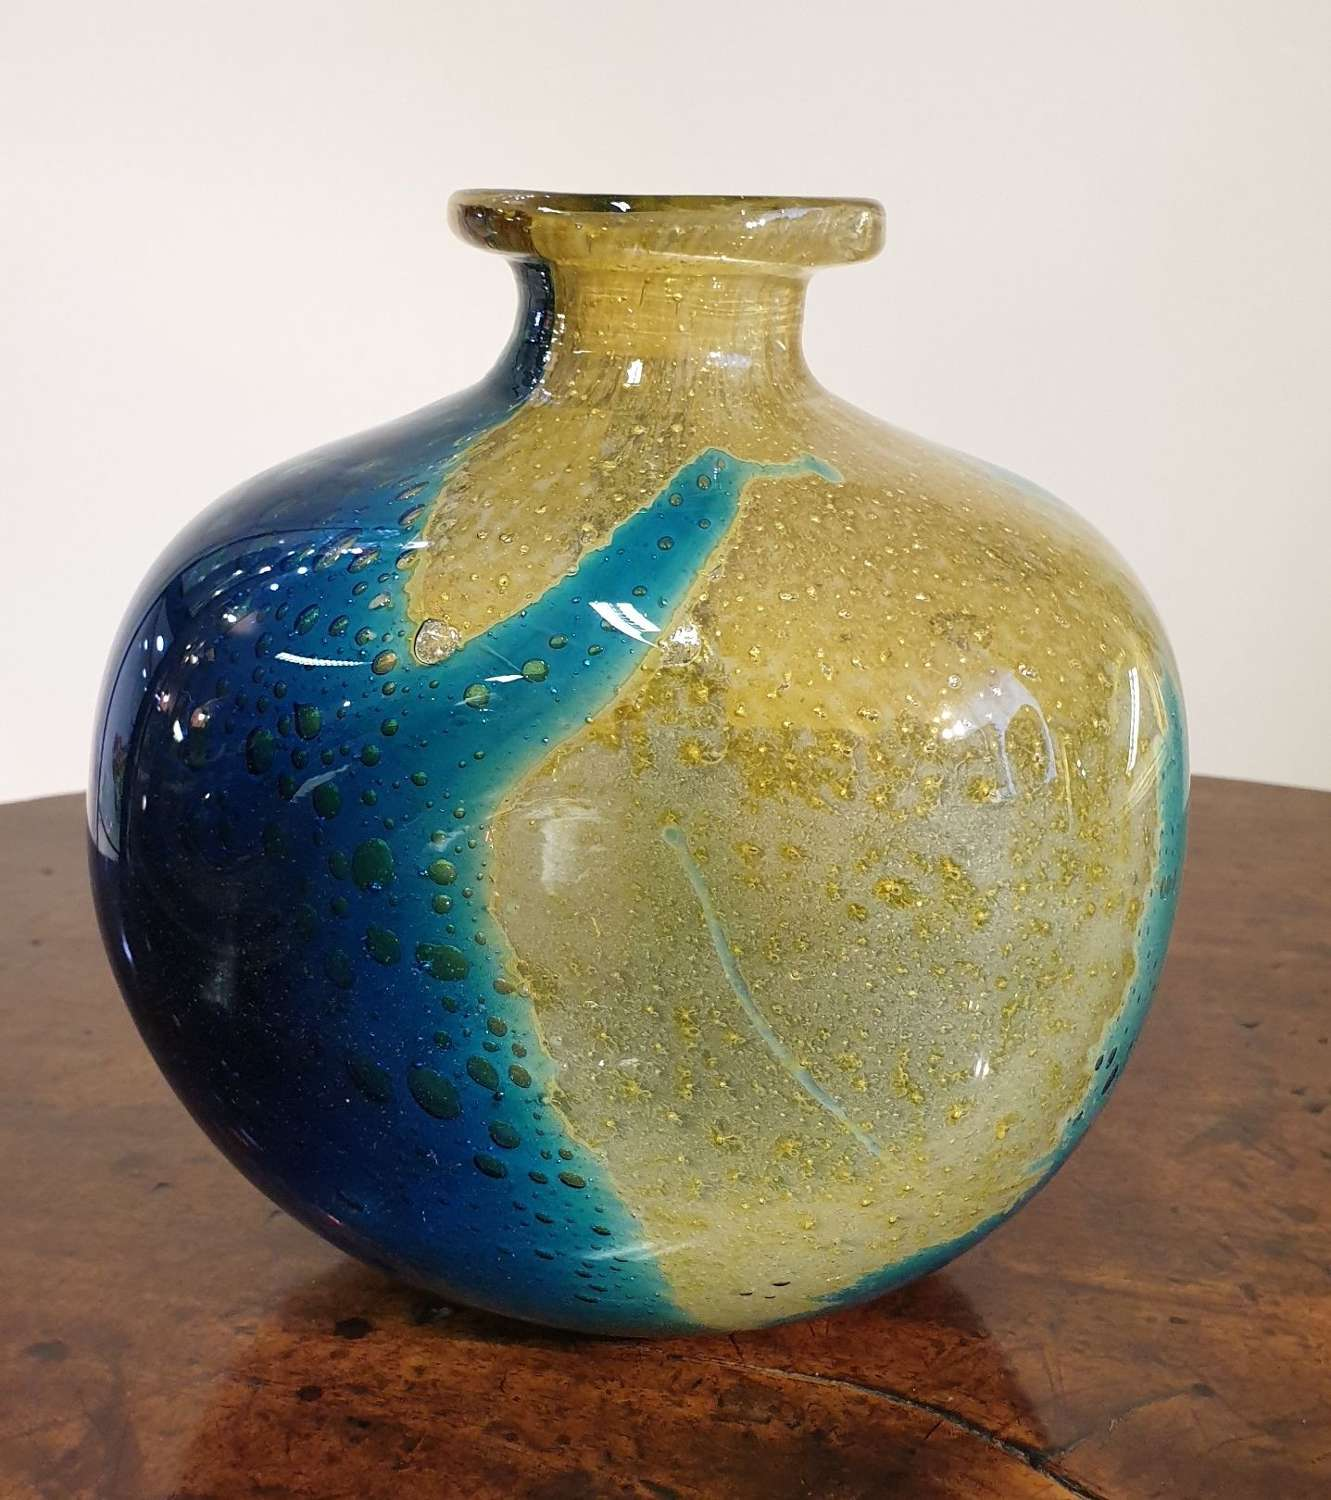 Early trial Mdina 'Japanese' Vase by Michael Harris